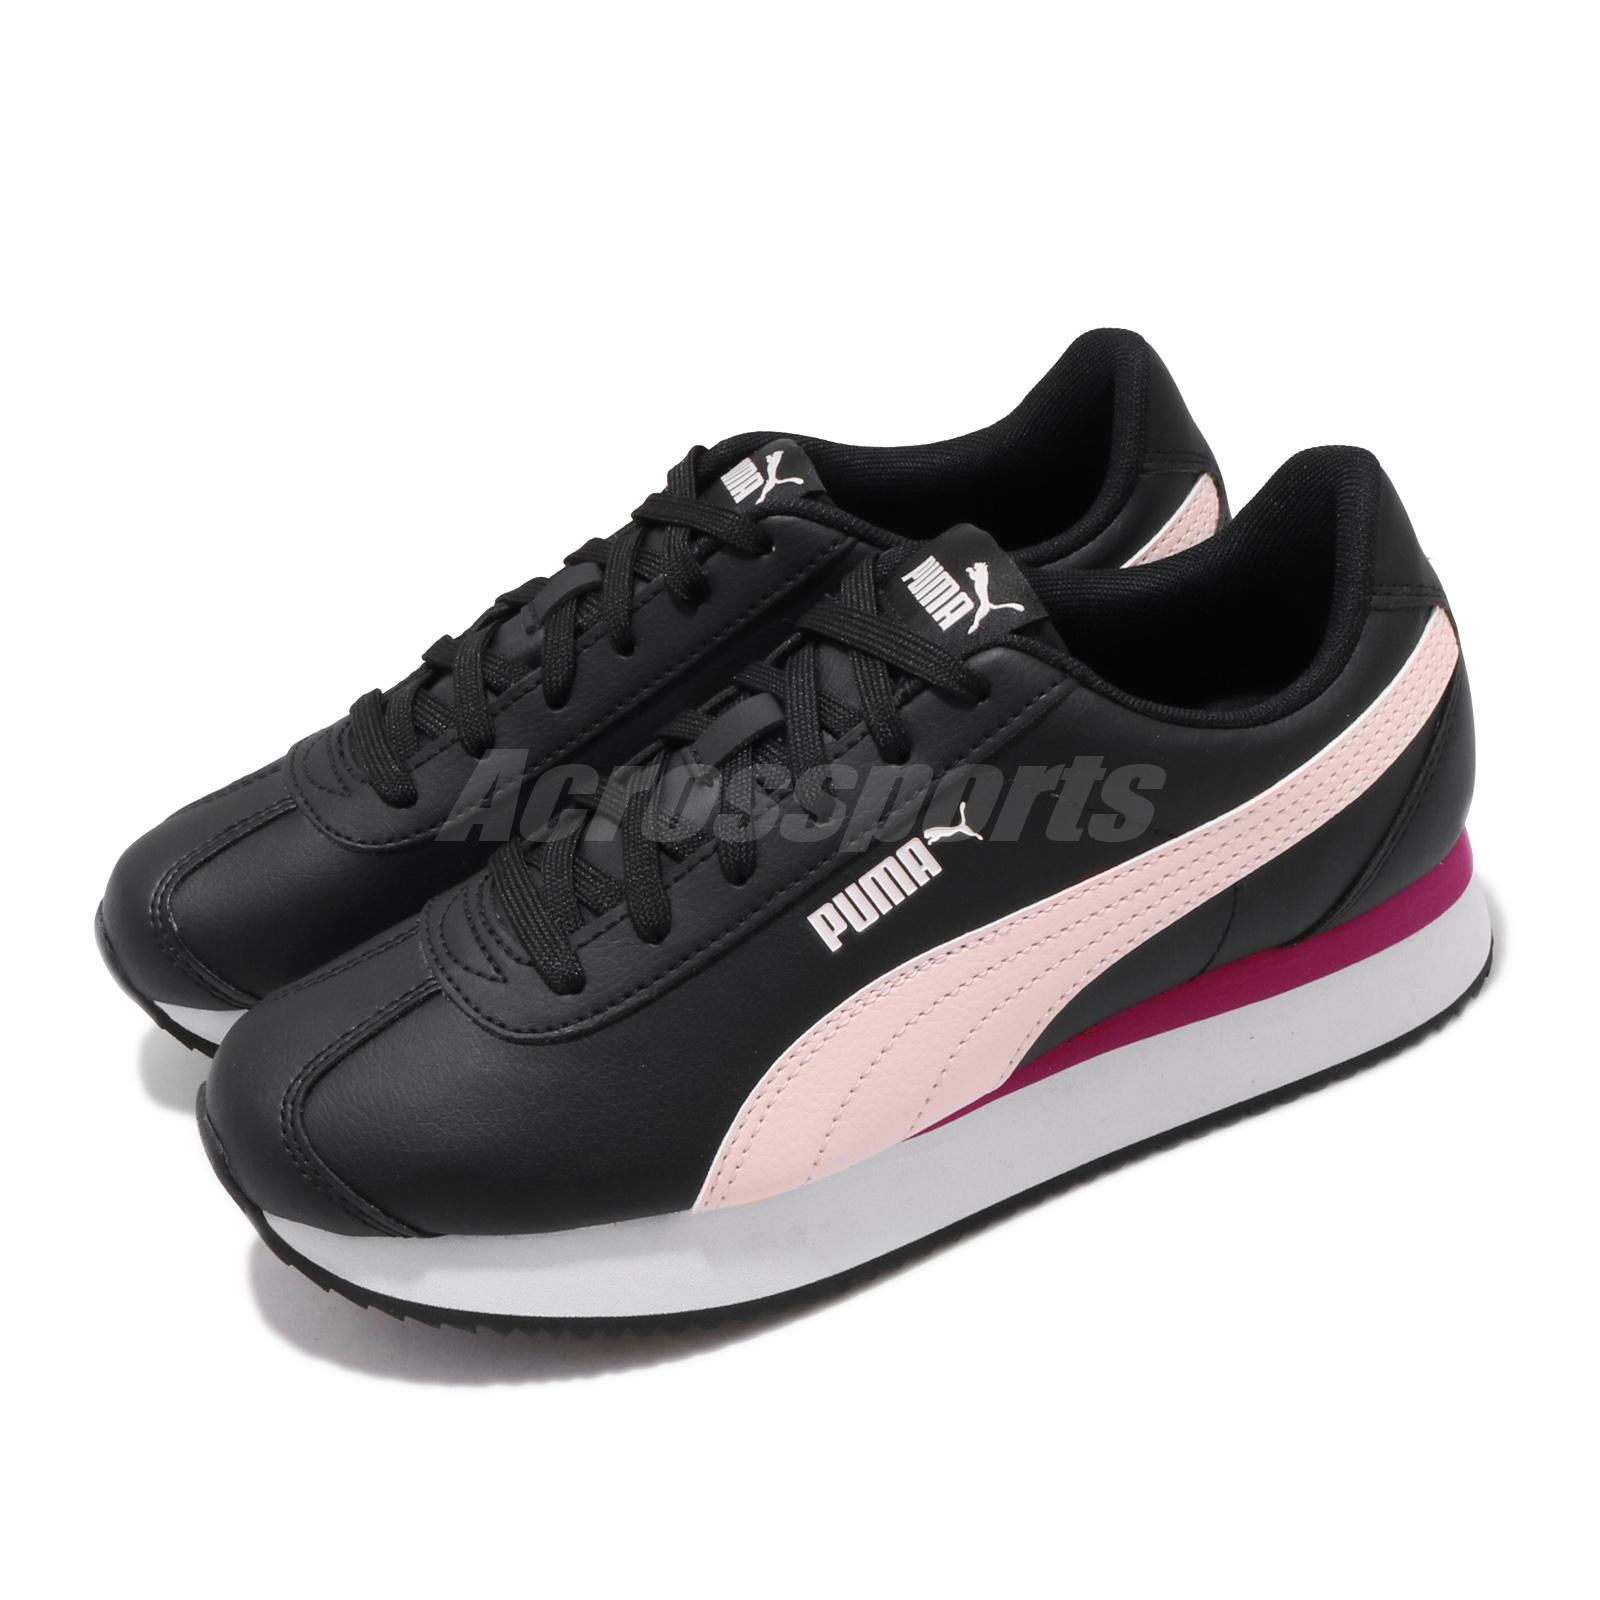 Details about Puma Turino Stacked Black Pink White Women Casual Shoes  Sneakers 371115-03